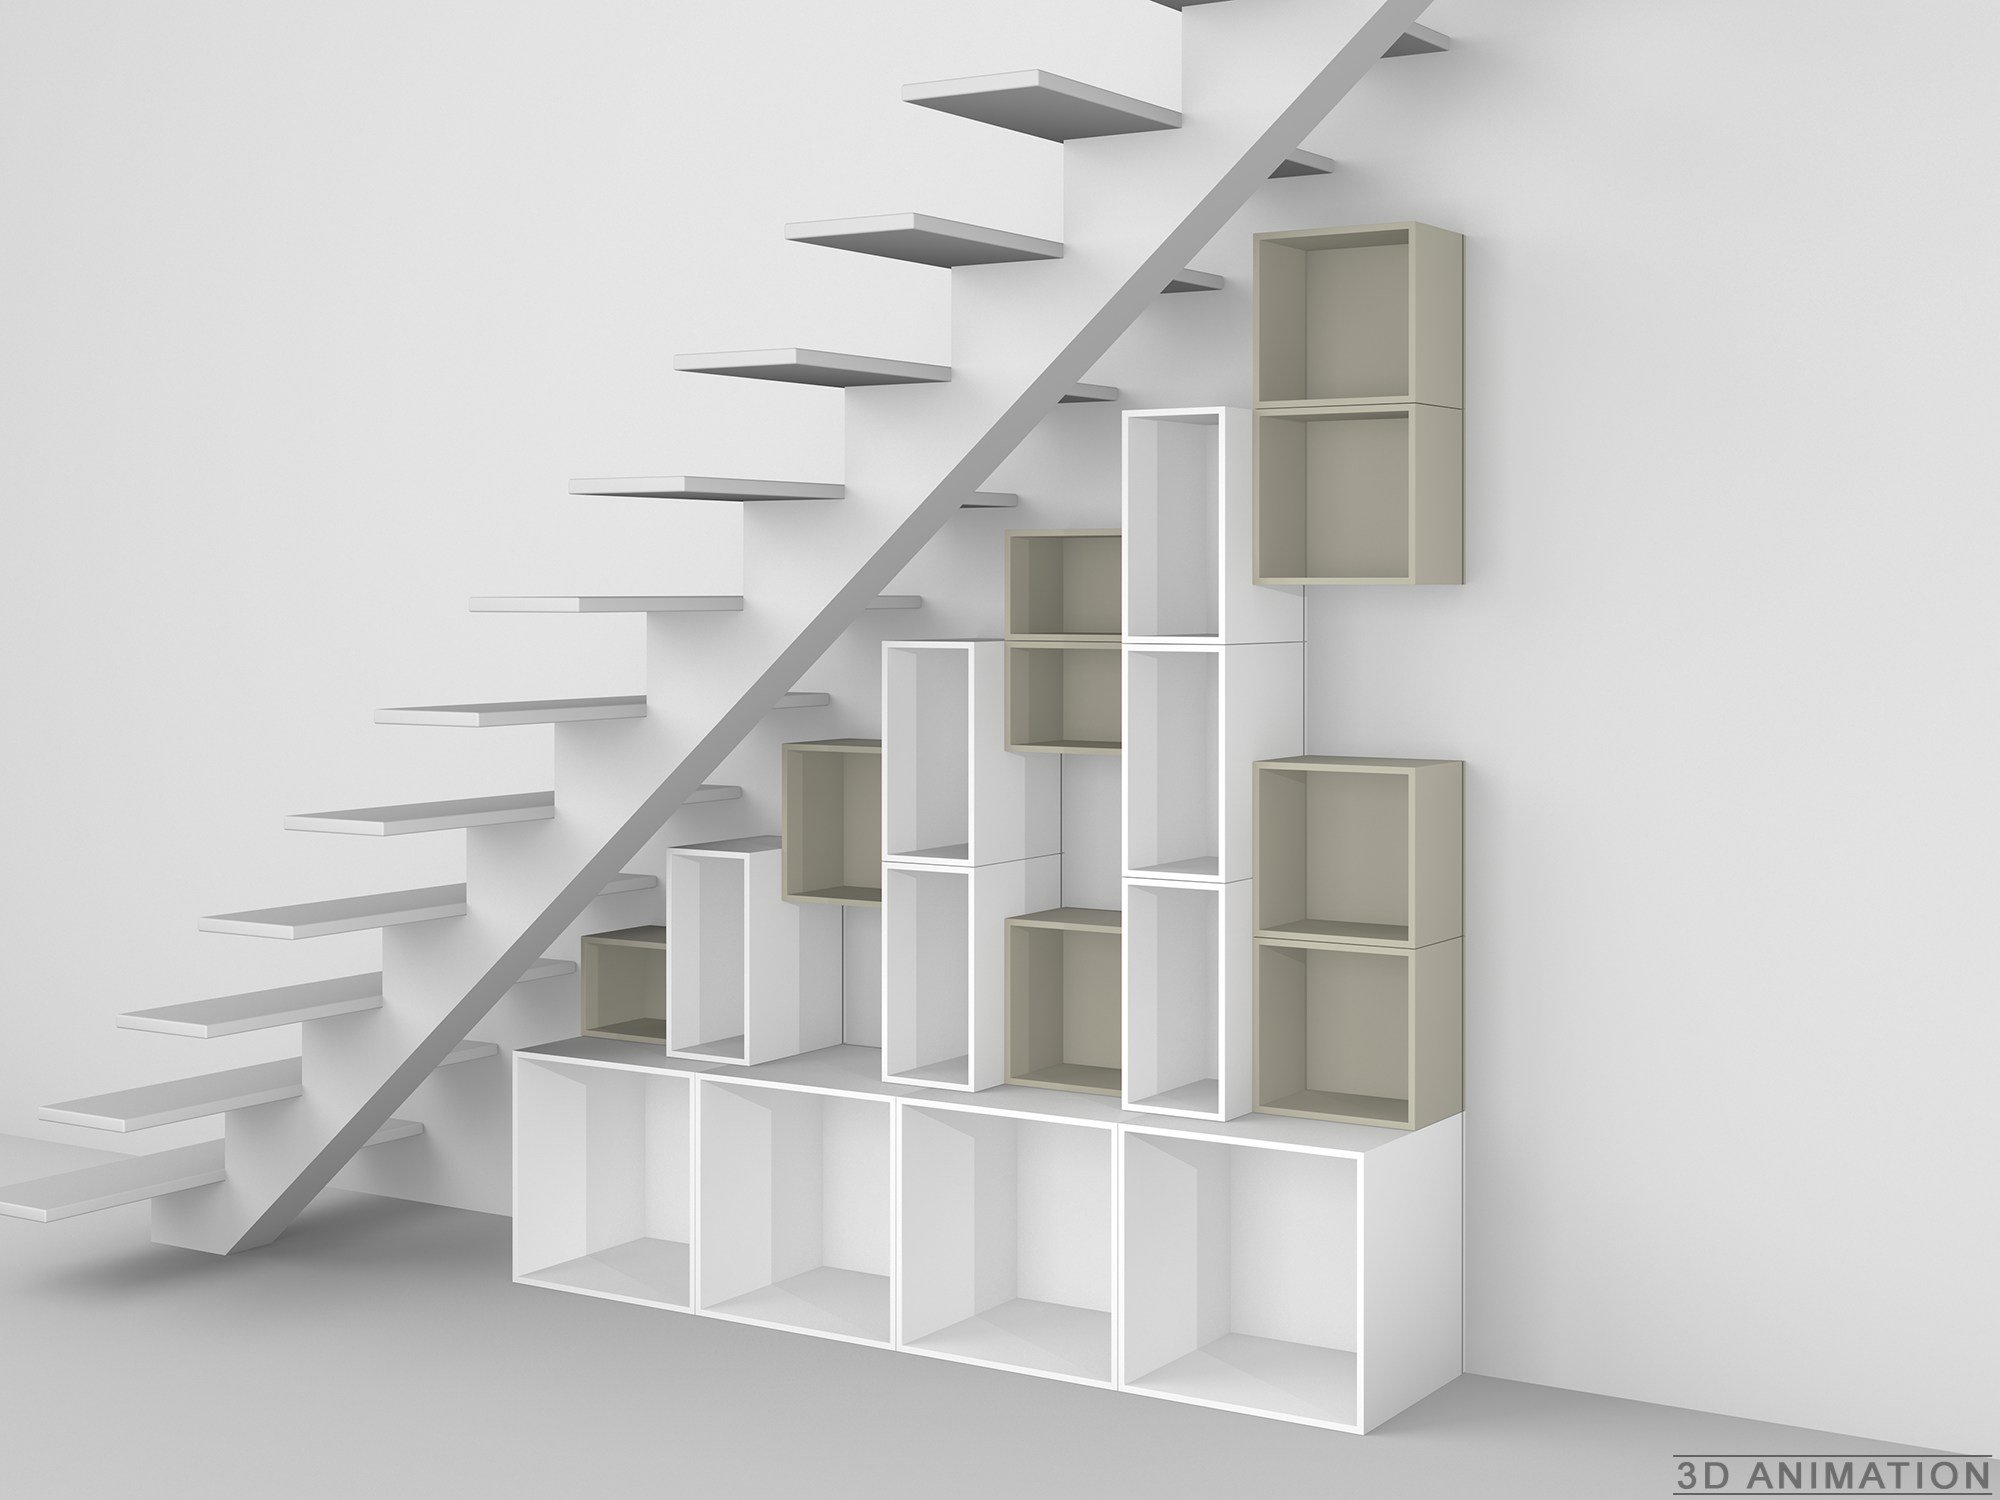 Modular shelving unit by cubit by mymito design cubit - Etagere murale sous tele ...